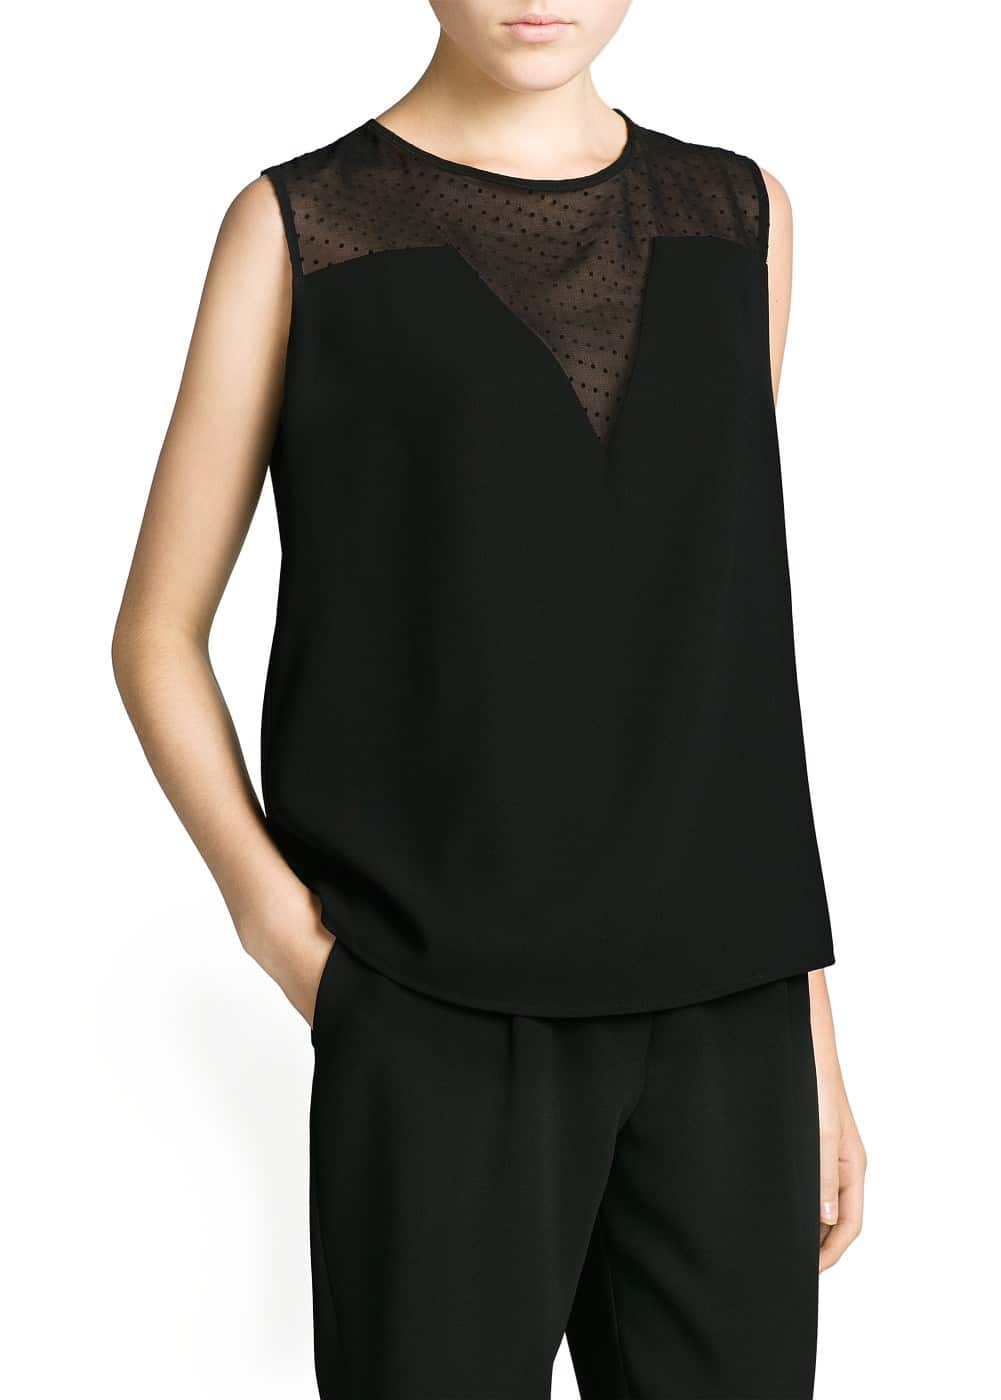 Polka-dot chiffon panel top